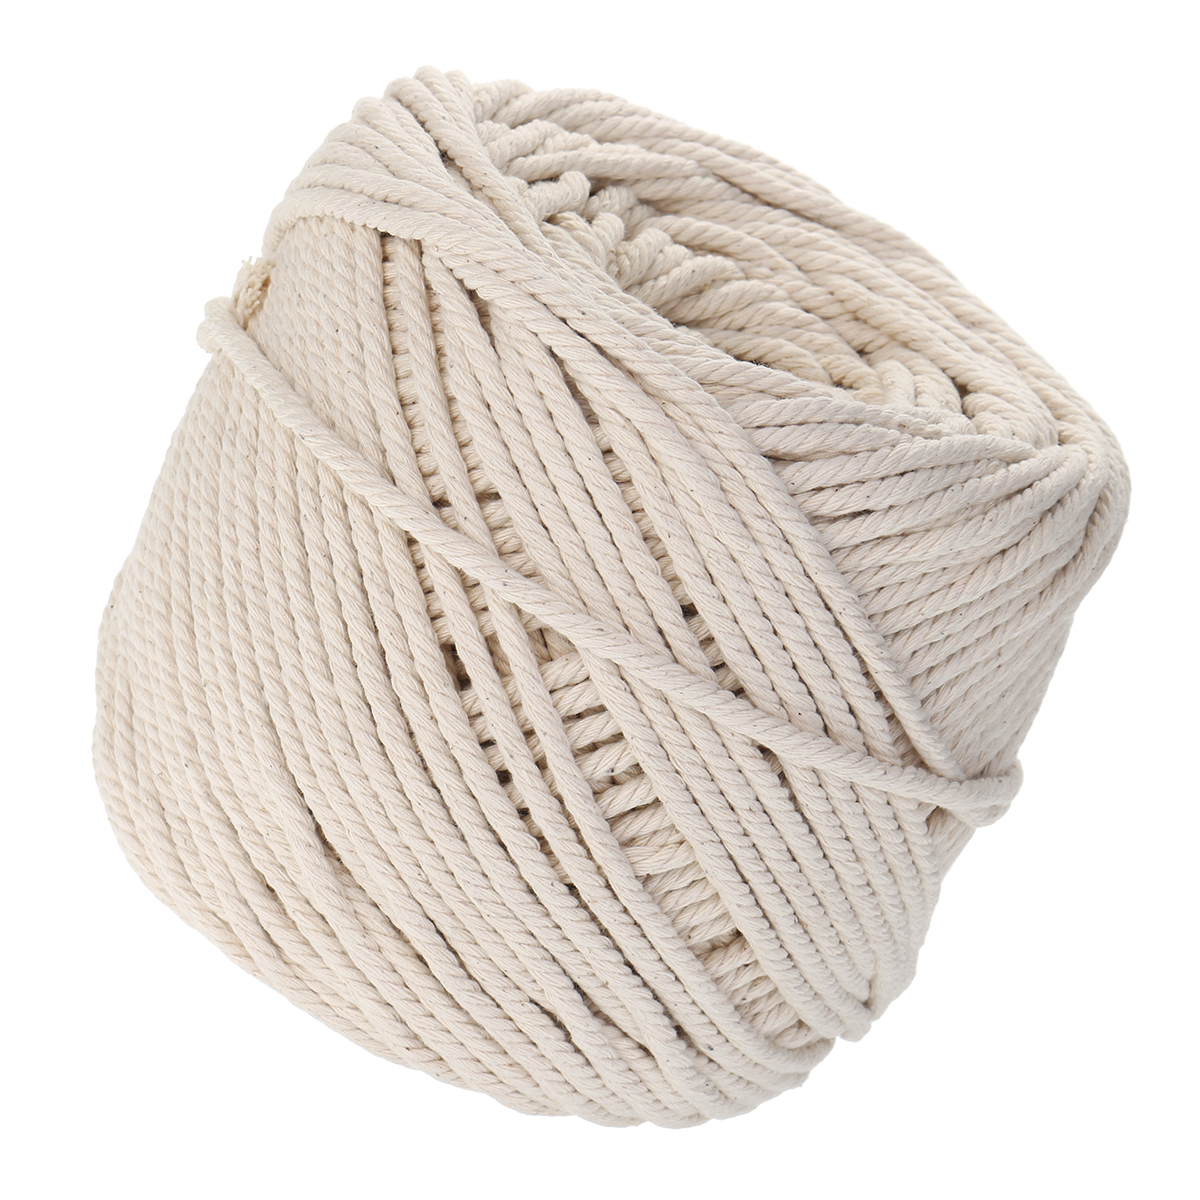 500M 4 Strands Natural Braided Cotton Cord Rope 4x125M Craft Macrame Multifunctional Tools